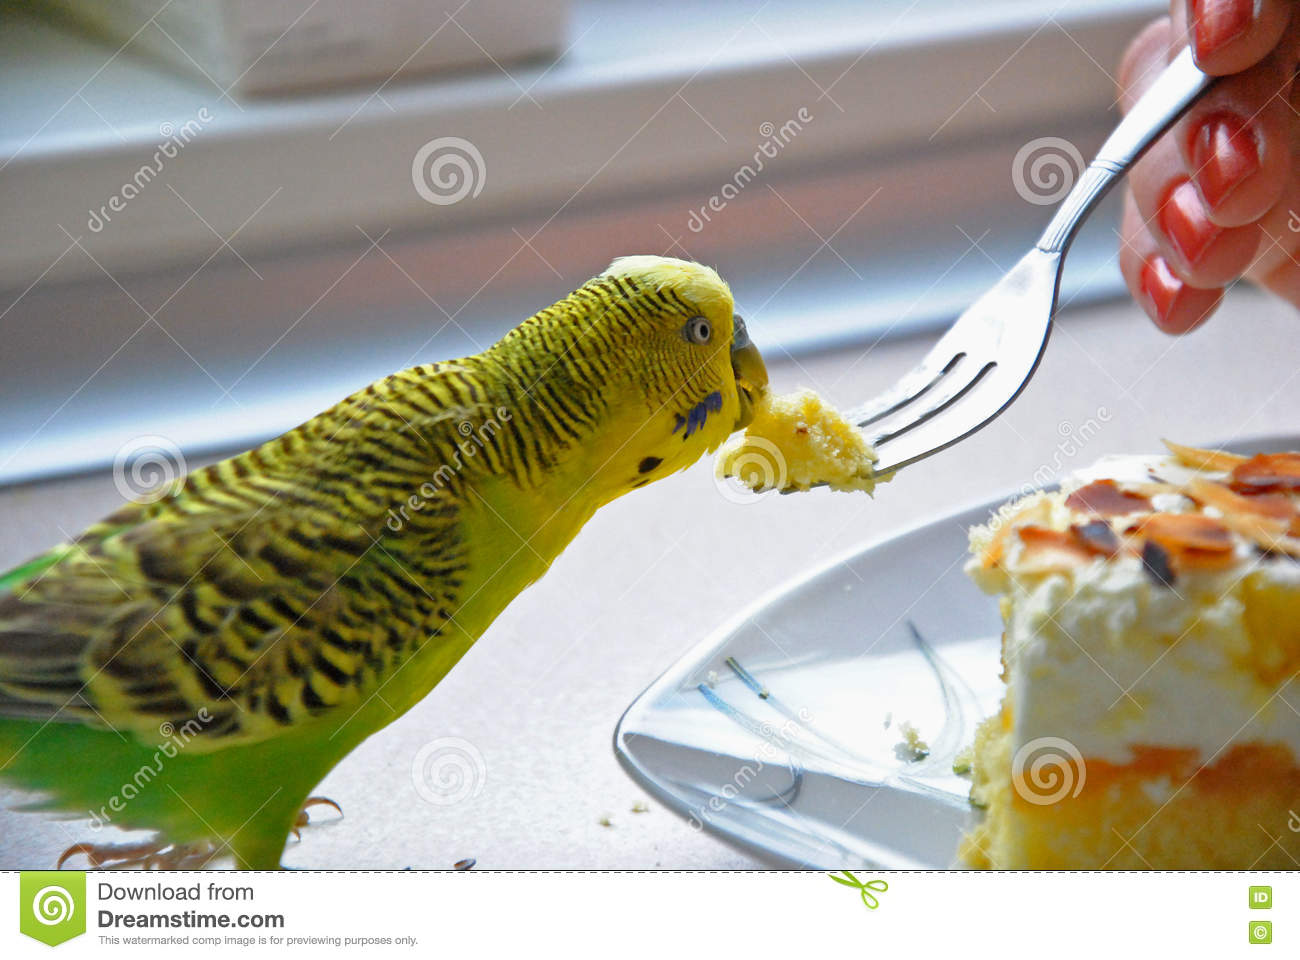 Eating parrot